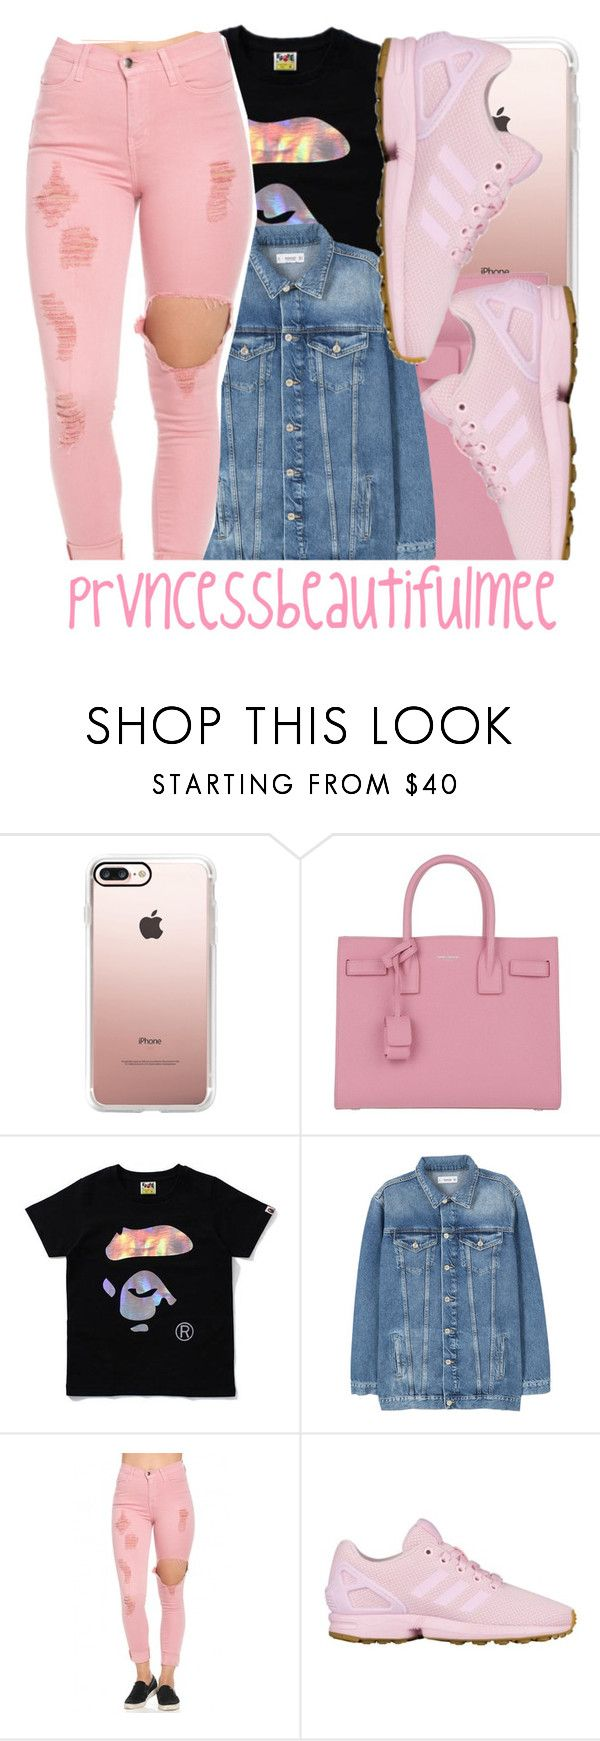 """"""""""" by prvncessbeautifulmee on Polyvore featuring Casetify, Yves Saint Laurent, MANGO and adidas Originals"""